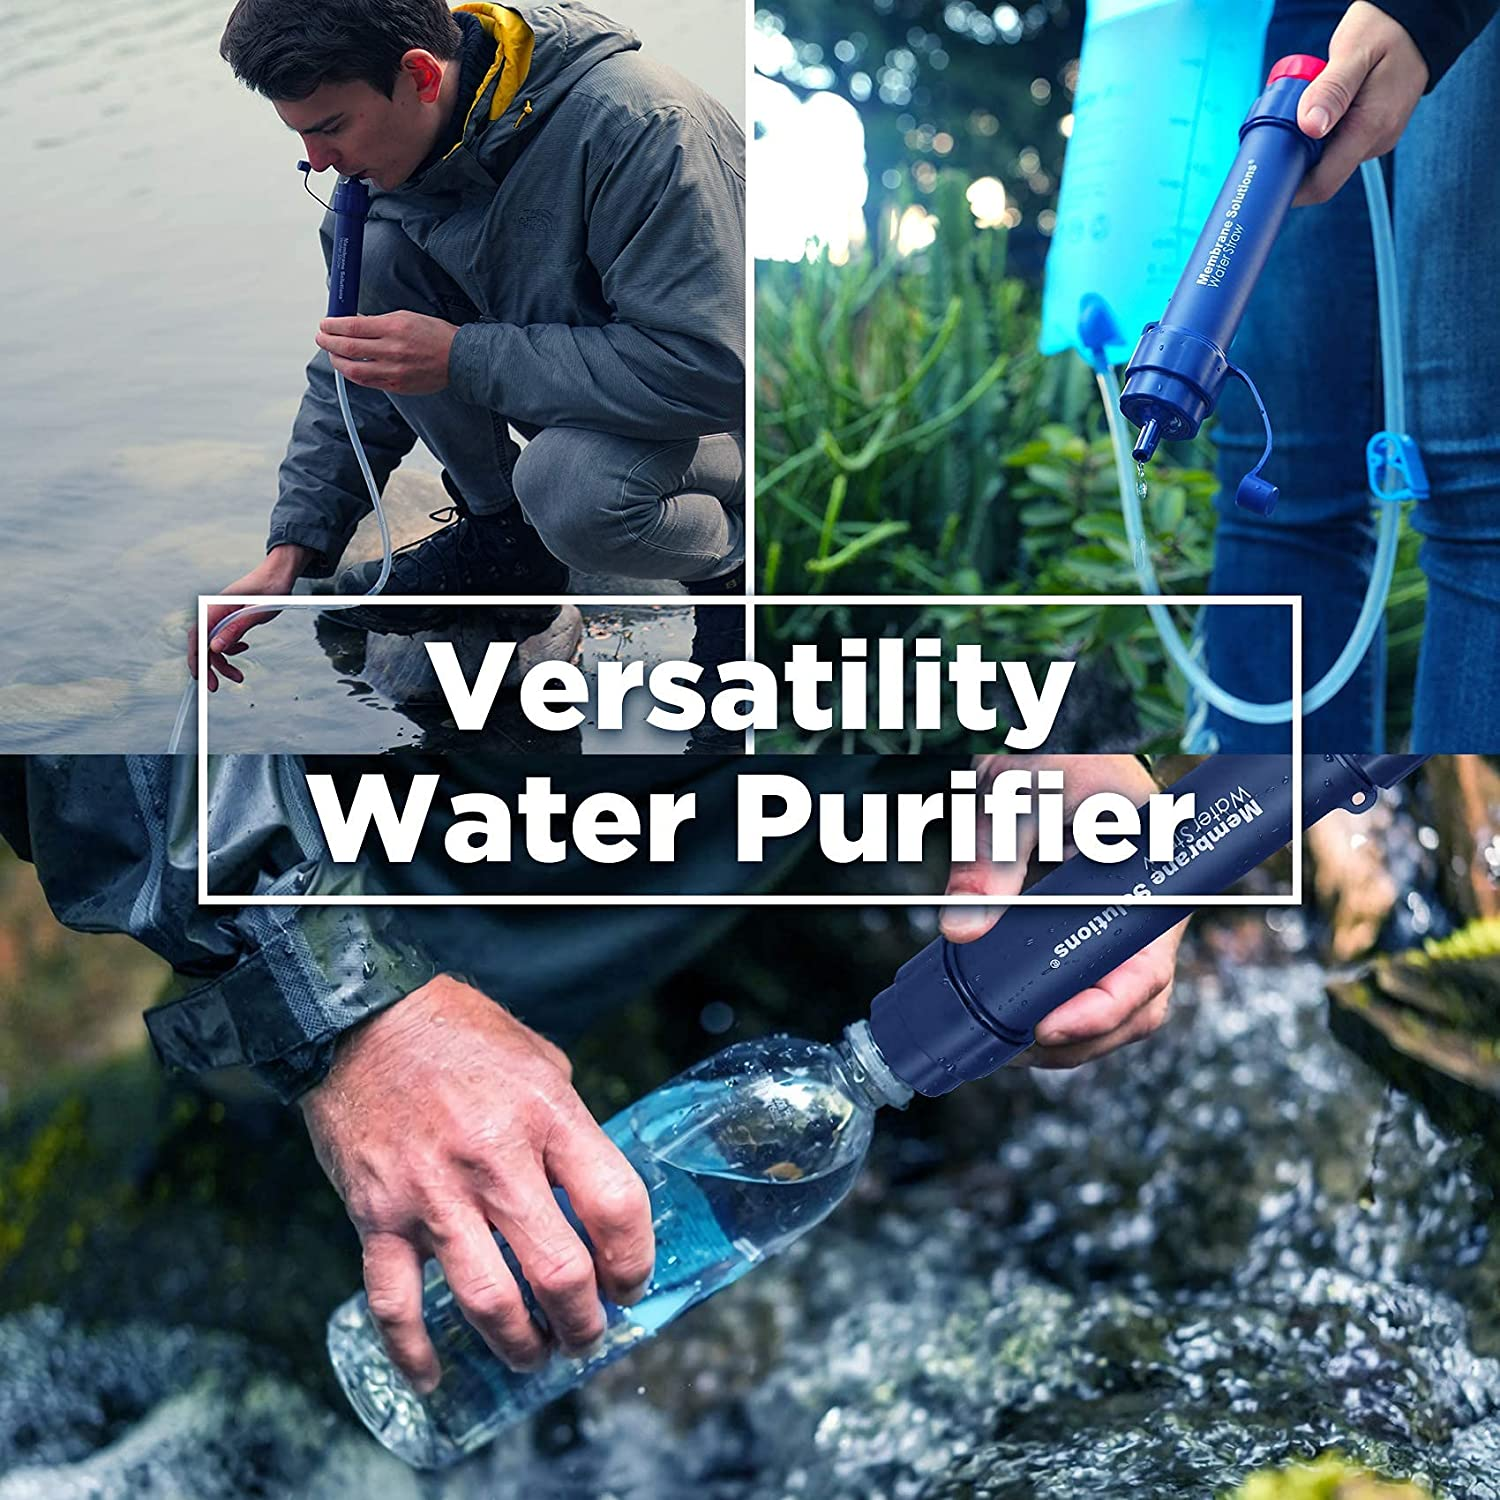 WS02 Personal Water Filter Straw, 0.1 Micron 4-Stage Water Purifier Survival Gear, 3,000L Portable Water Filtration System, Removable Water Filter Hiking Camping Emergency Preparedness, 1 Pack : Sports & Outdoors